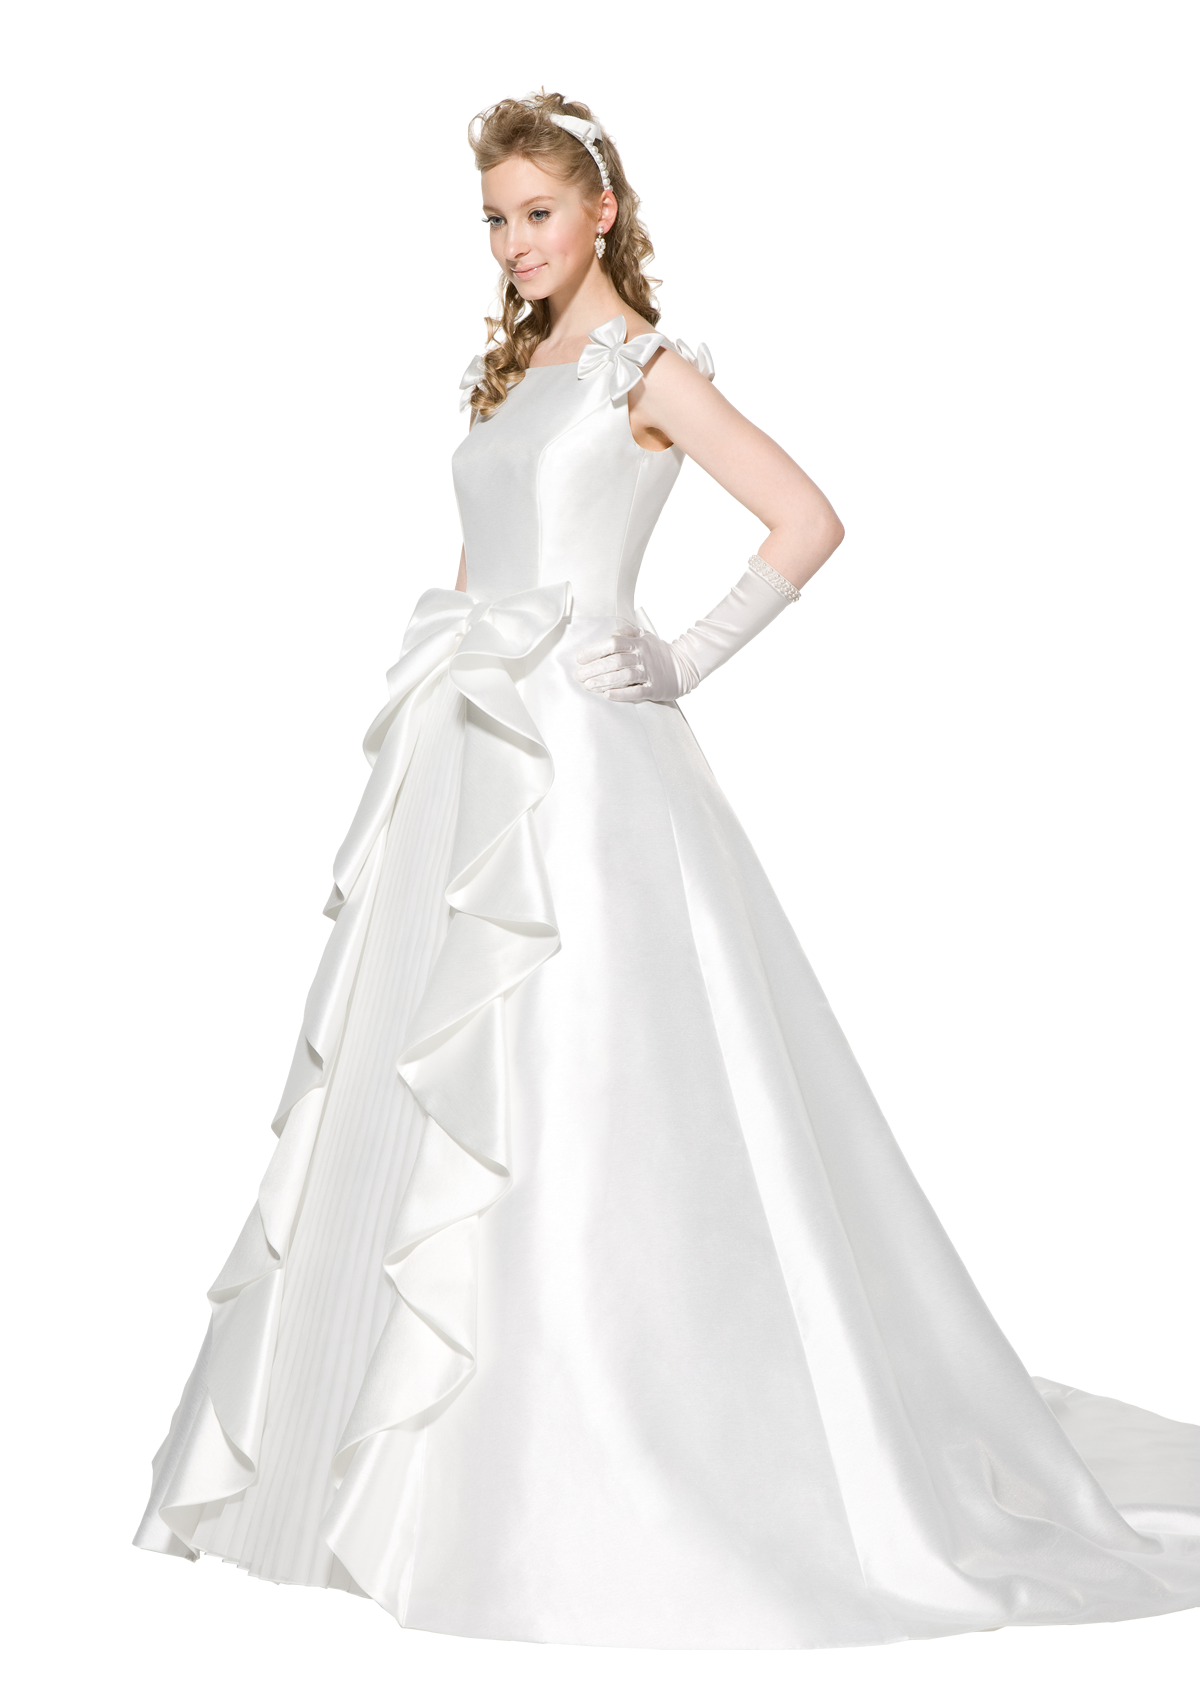 Bride Wear Beautiful White Dress